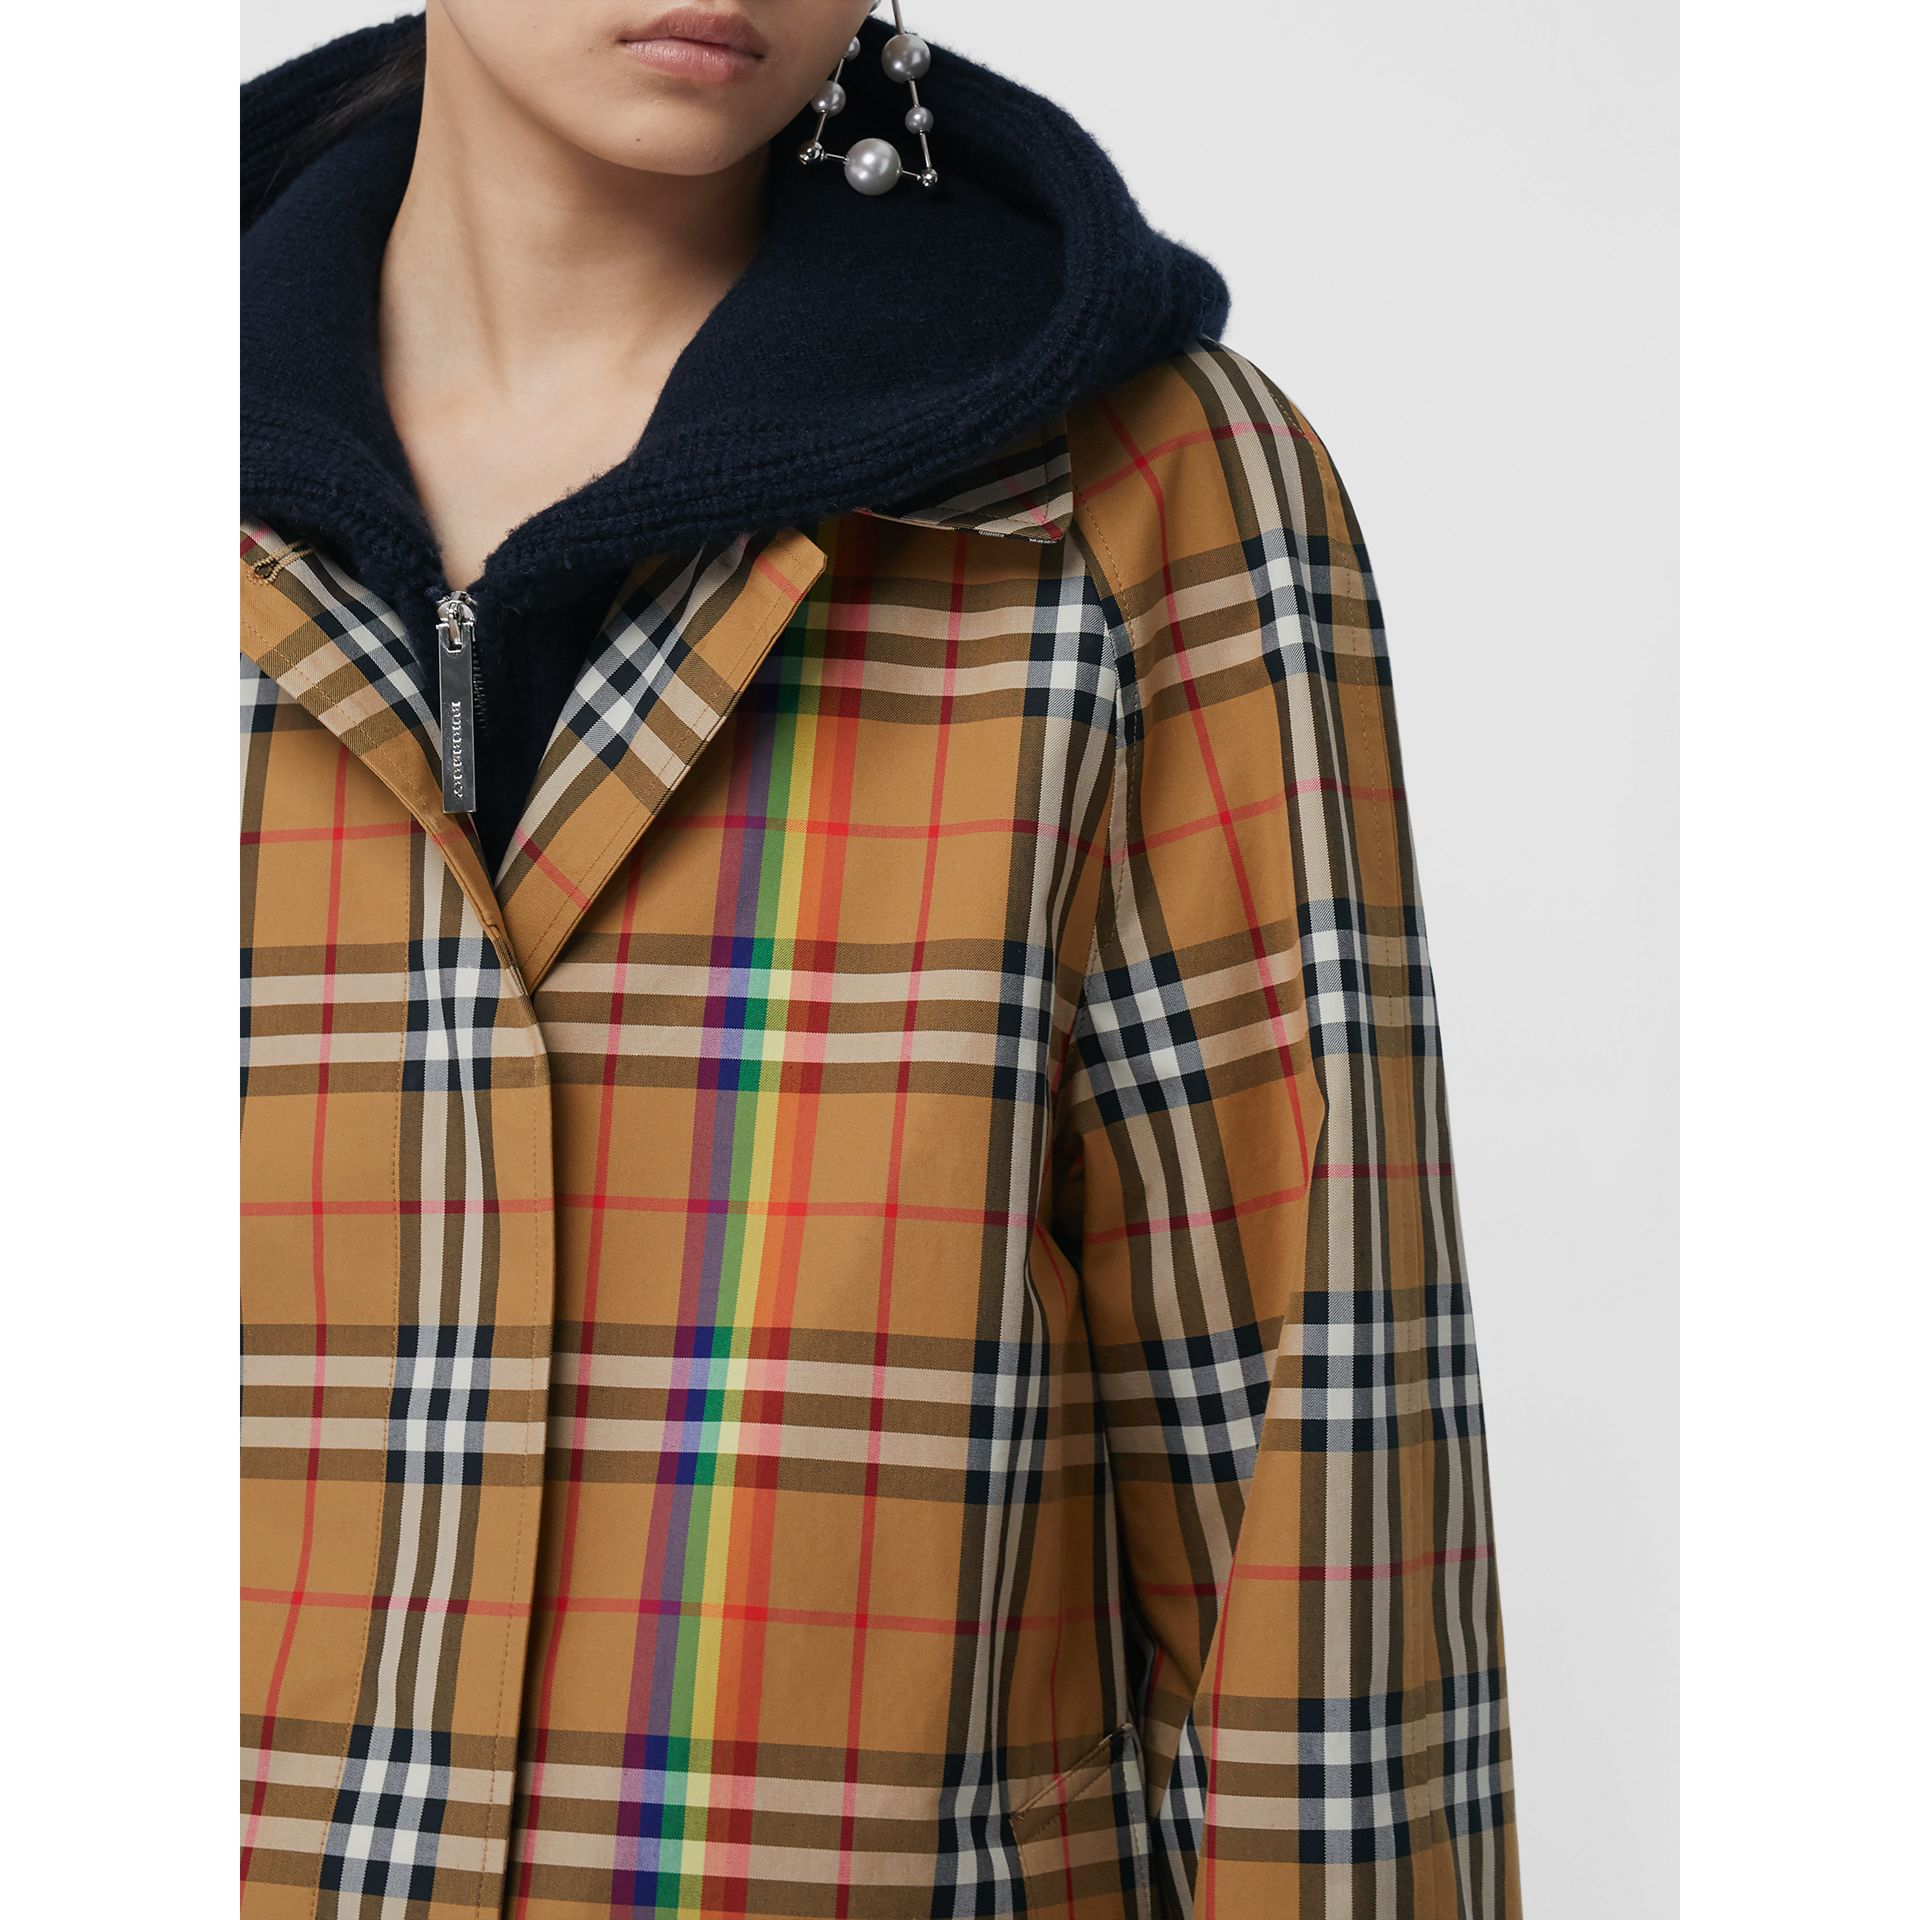 Rainbow Vintage Check Car Coat in Multicolour - Women | Burberry United Kingdom - gallery image 4